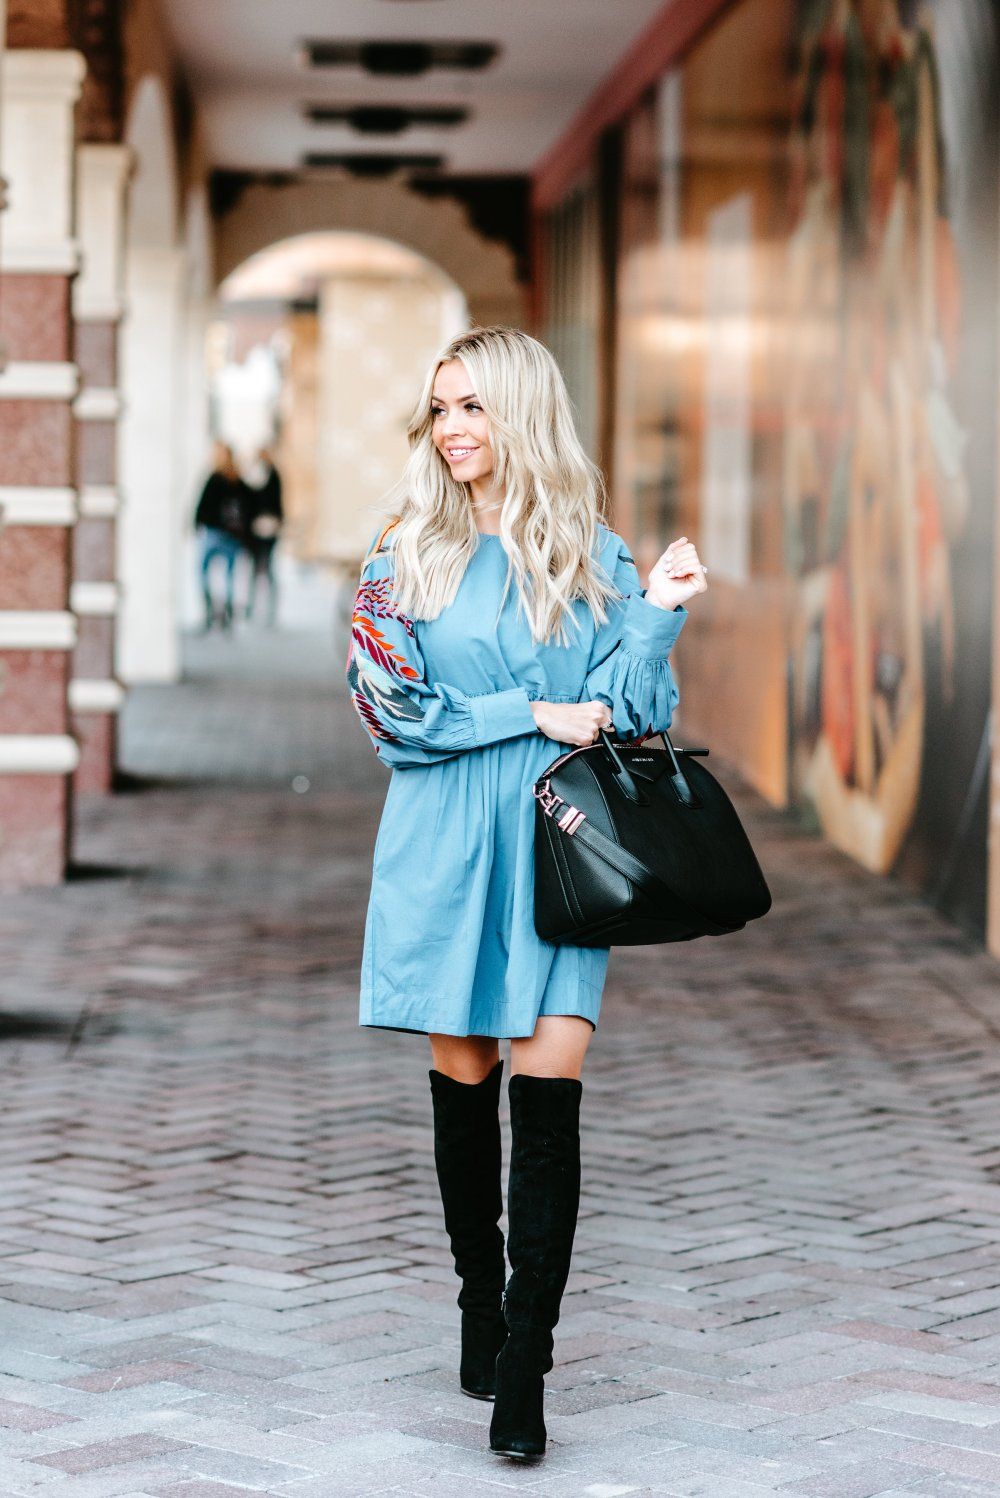 Over the knee boots are such a closet staple and are worth wearing through more than one season! Transition your OTK boots into spring with dresses like this one that can also be worn later in spring/summer with wedges or sandals! I am crushing on the pop of color in this outfit with the embroidery details! My over sized bag adds a touch of glam too! #trulydestiny #womensfashion #otkboots #embroidery #springfashion #transitionpieces